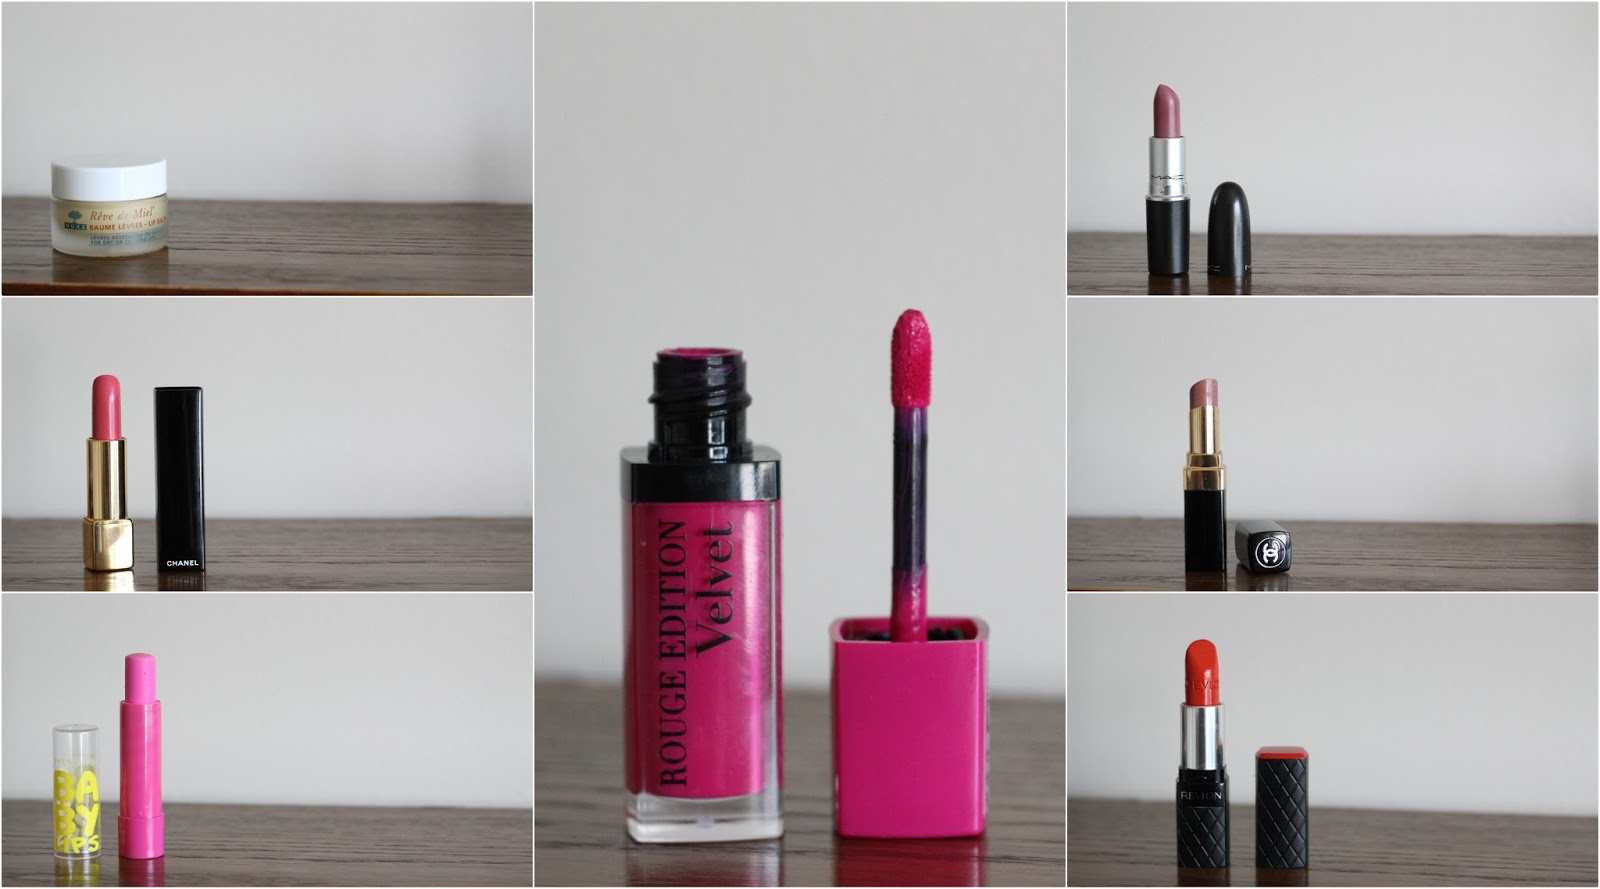 The Lip Product Addict Tag